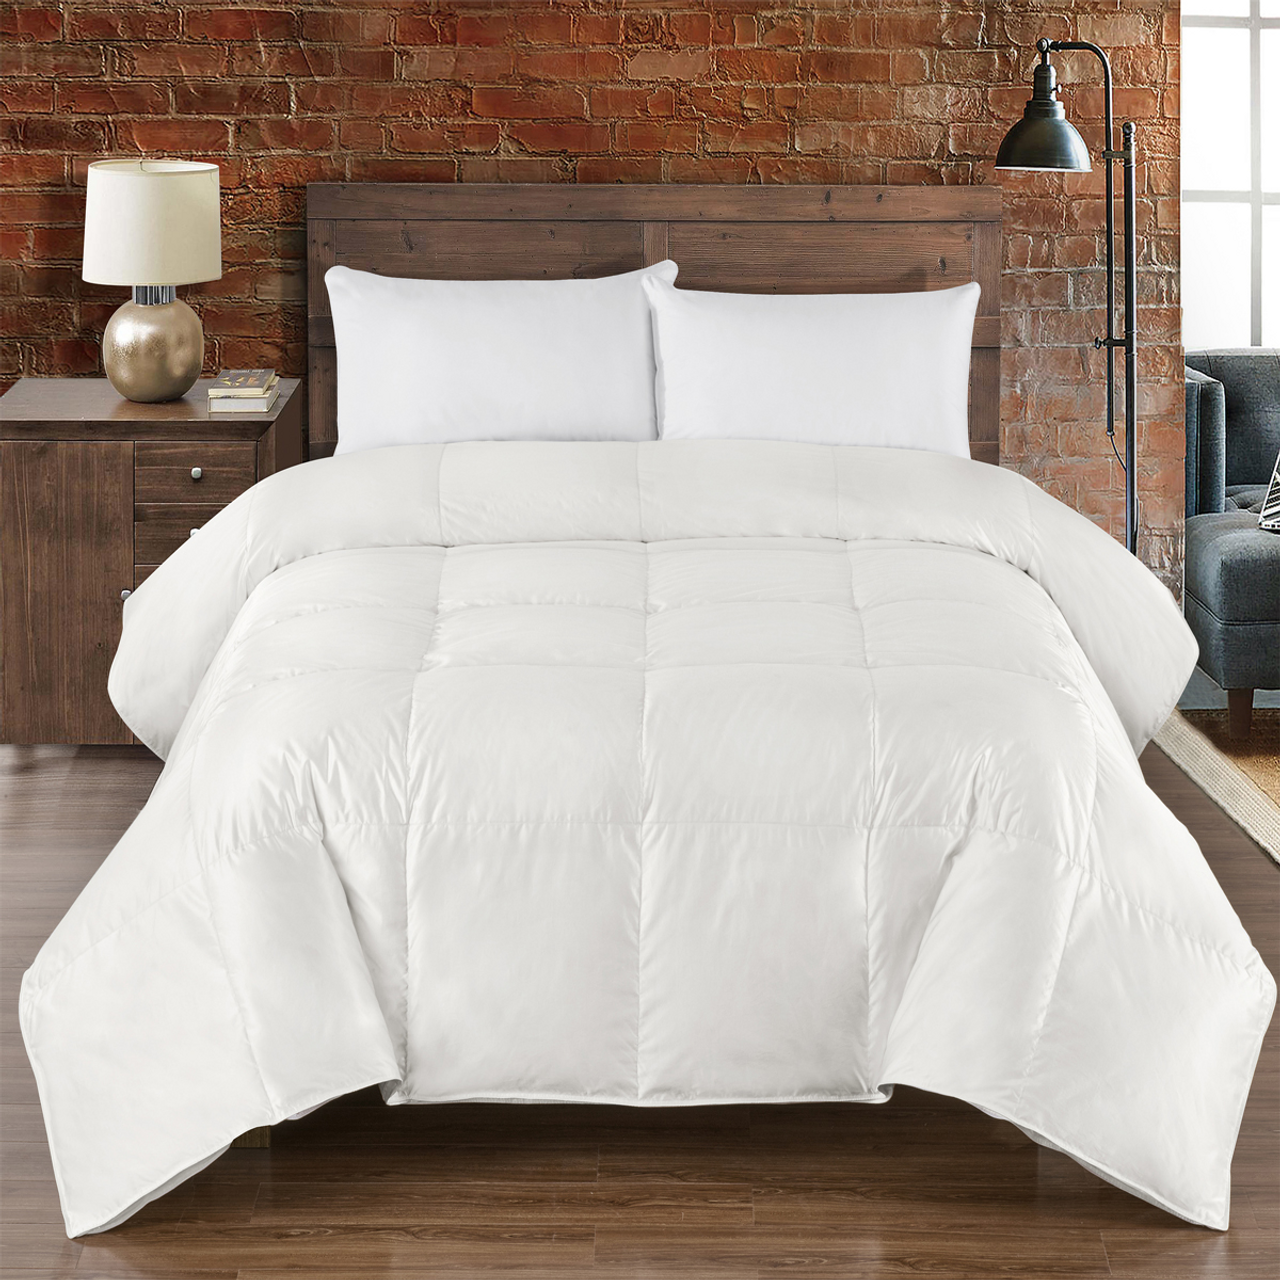 ... Goose Silk Solid 450tc: 45% Silk And 55% Cotton 450 Thread Count Solid